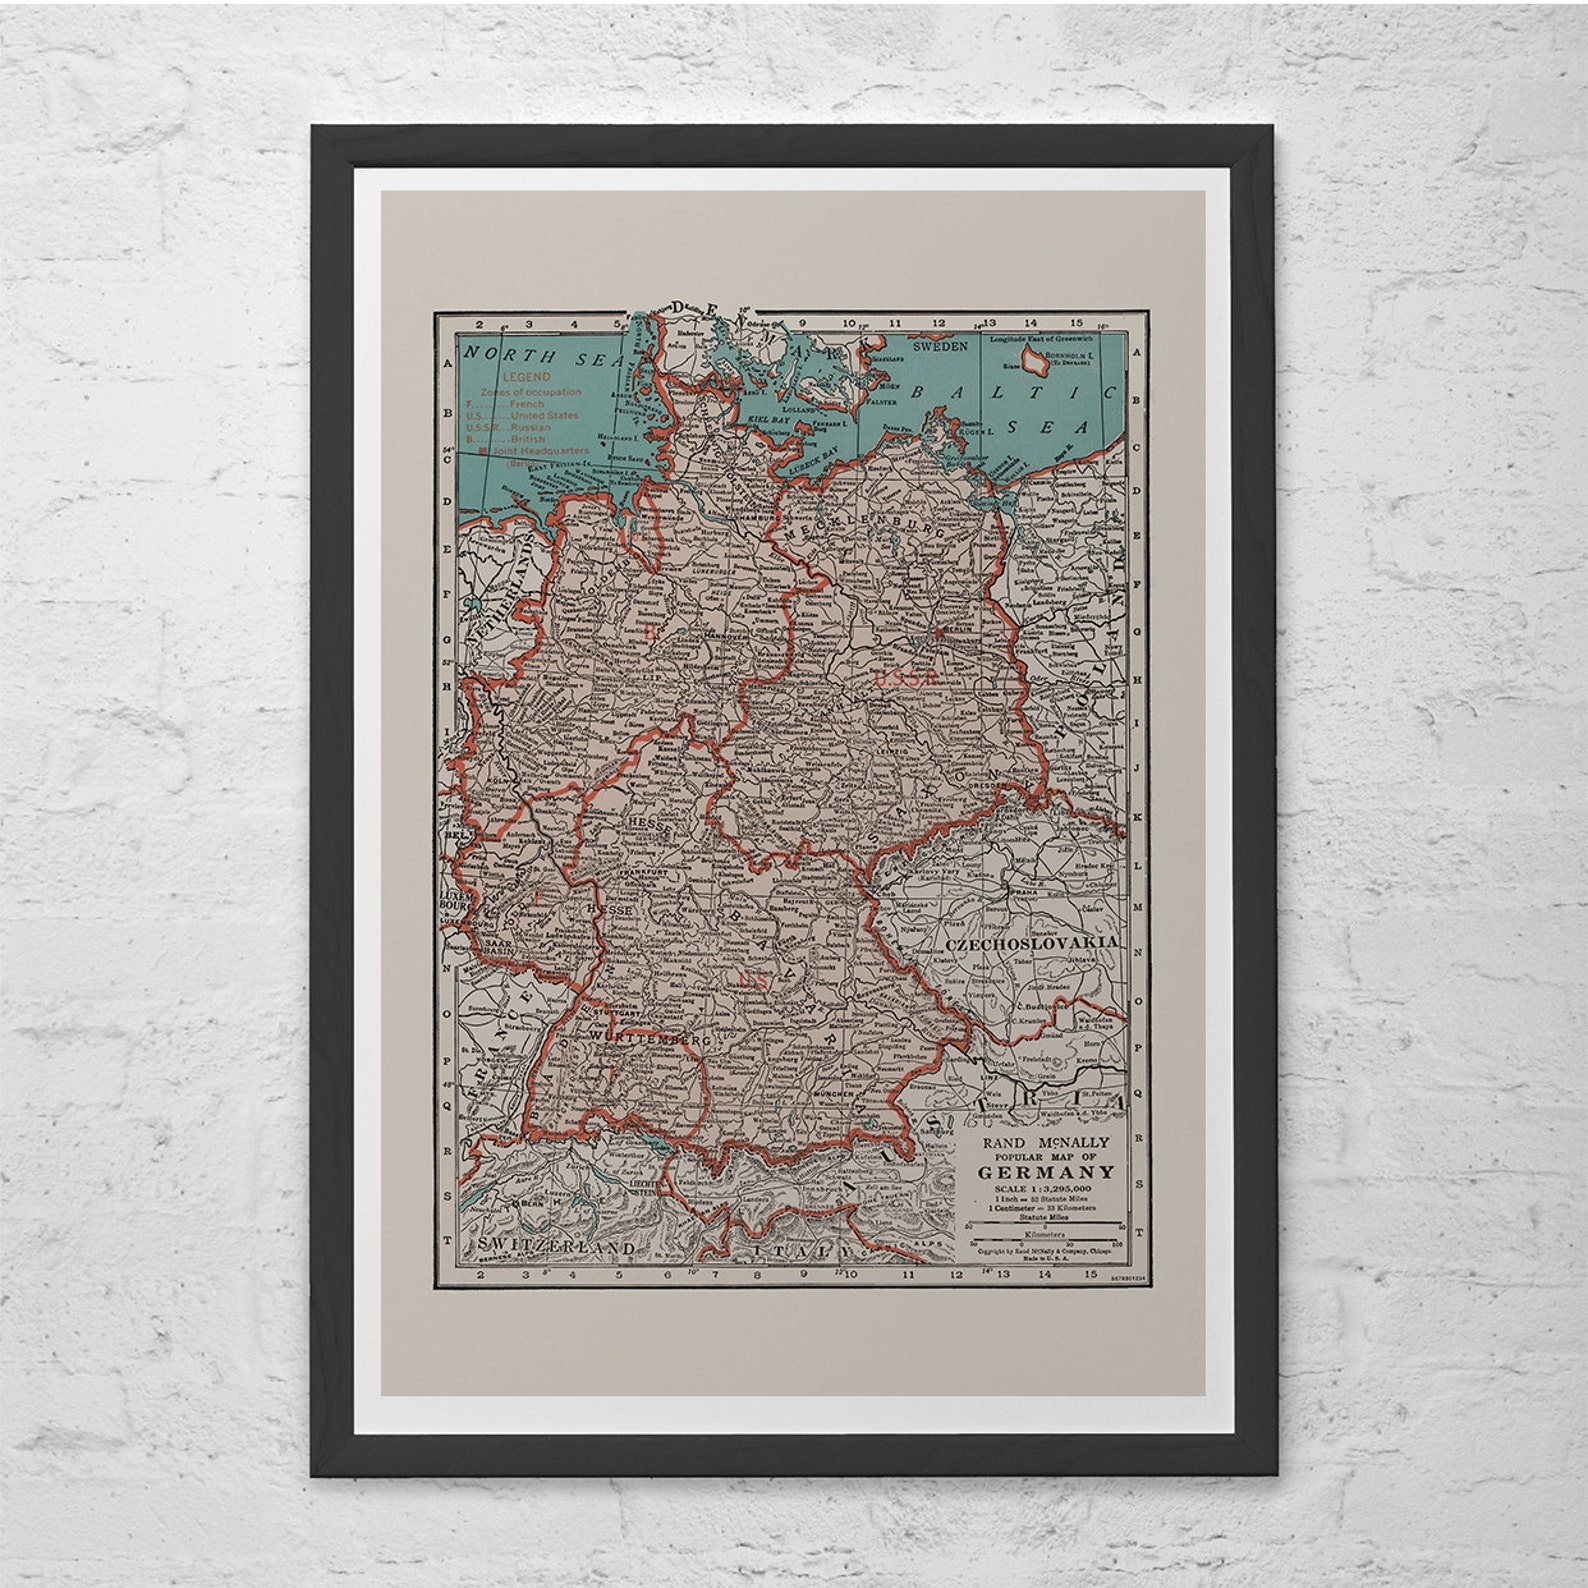 VINTAGE GERMANY MAP - Vintage Map of Germany Wall Art - Vintage Map Reproduction,